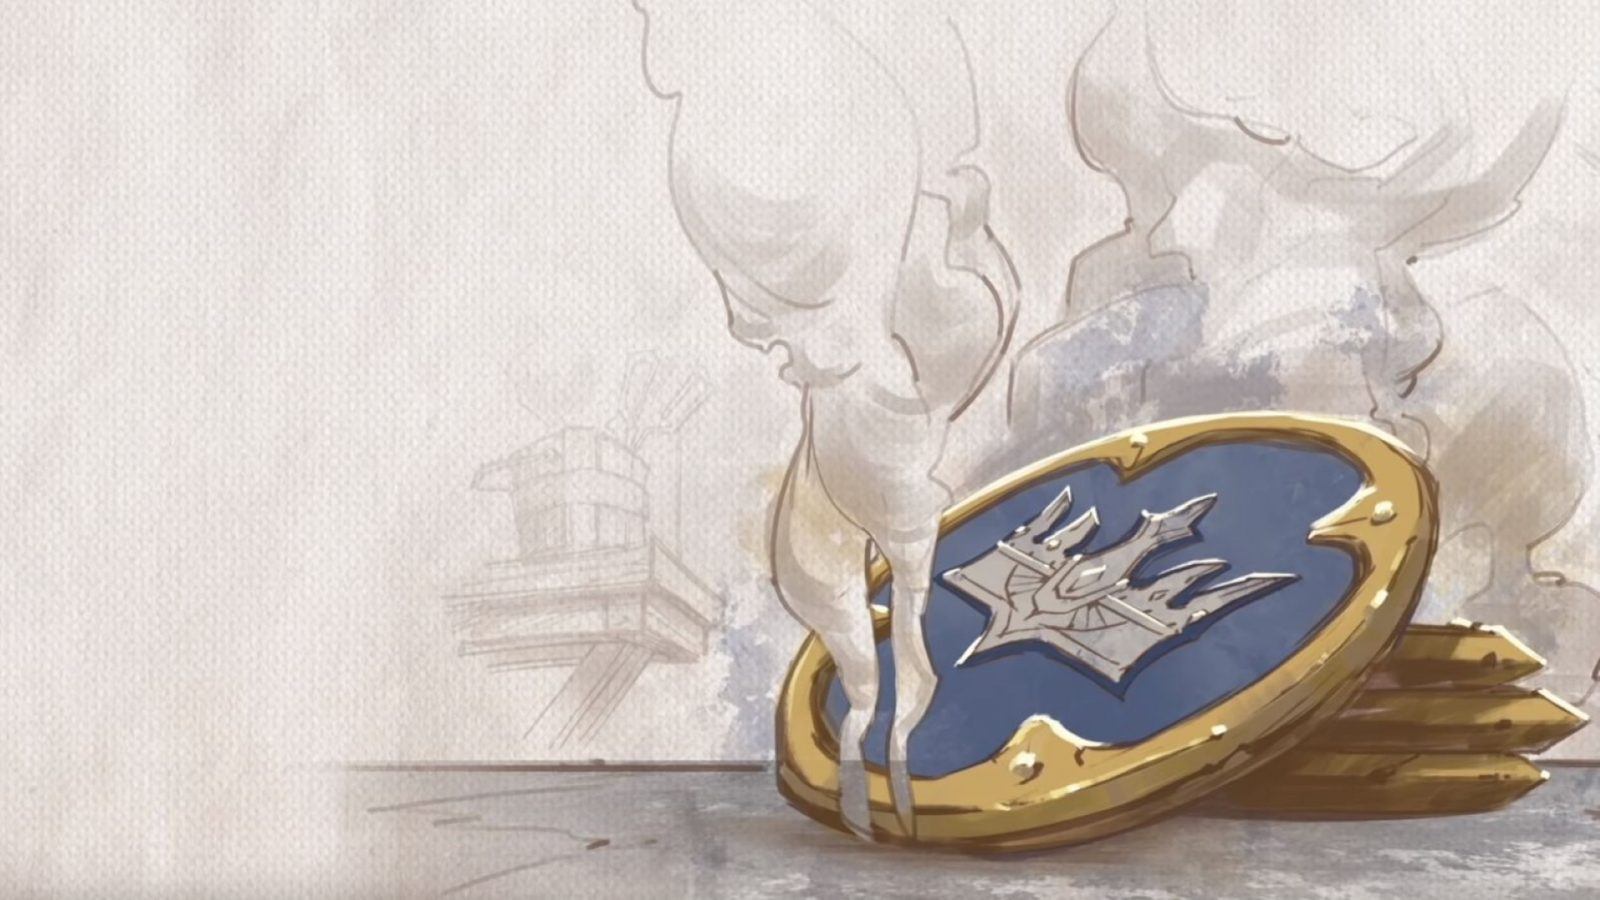 Riot reveals one other League of Legends recreation – a tabletop named Tellstones